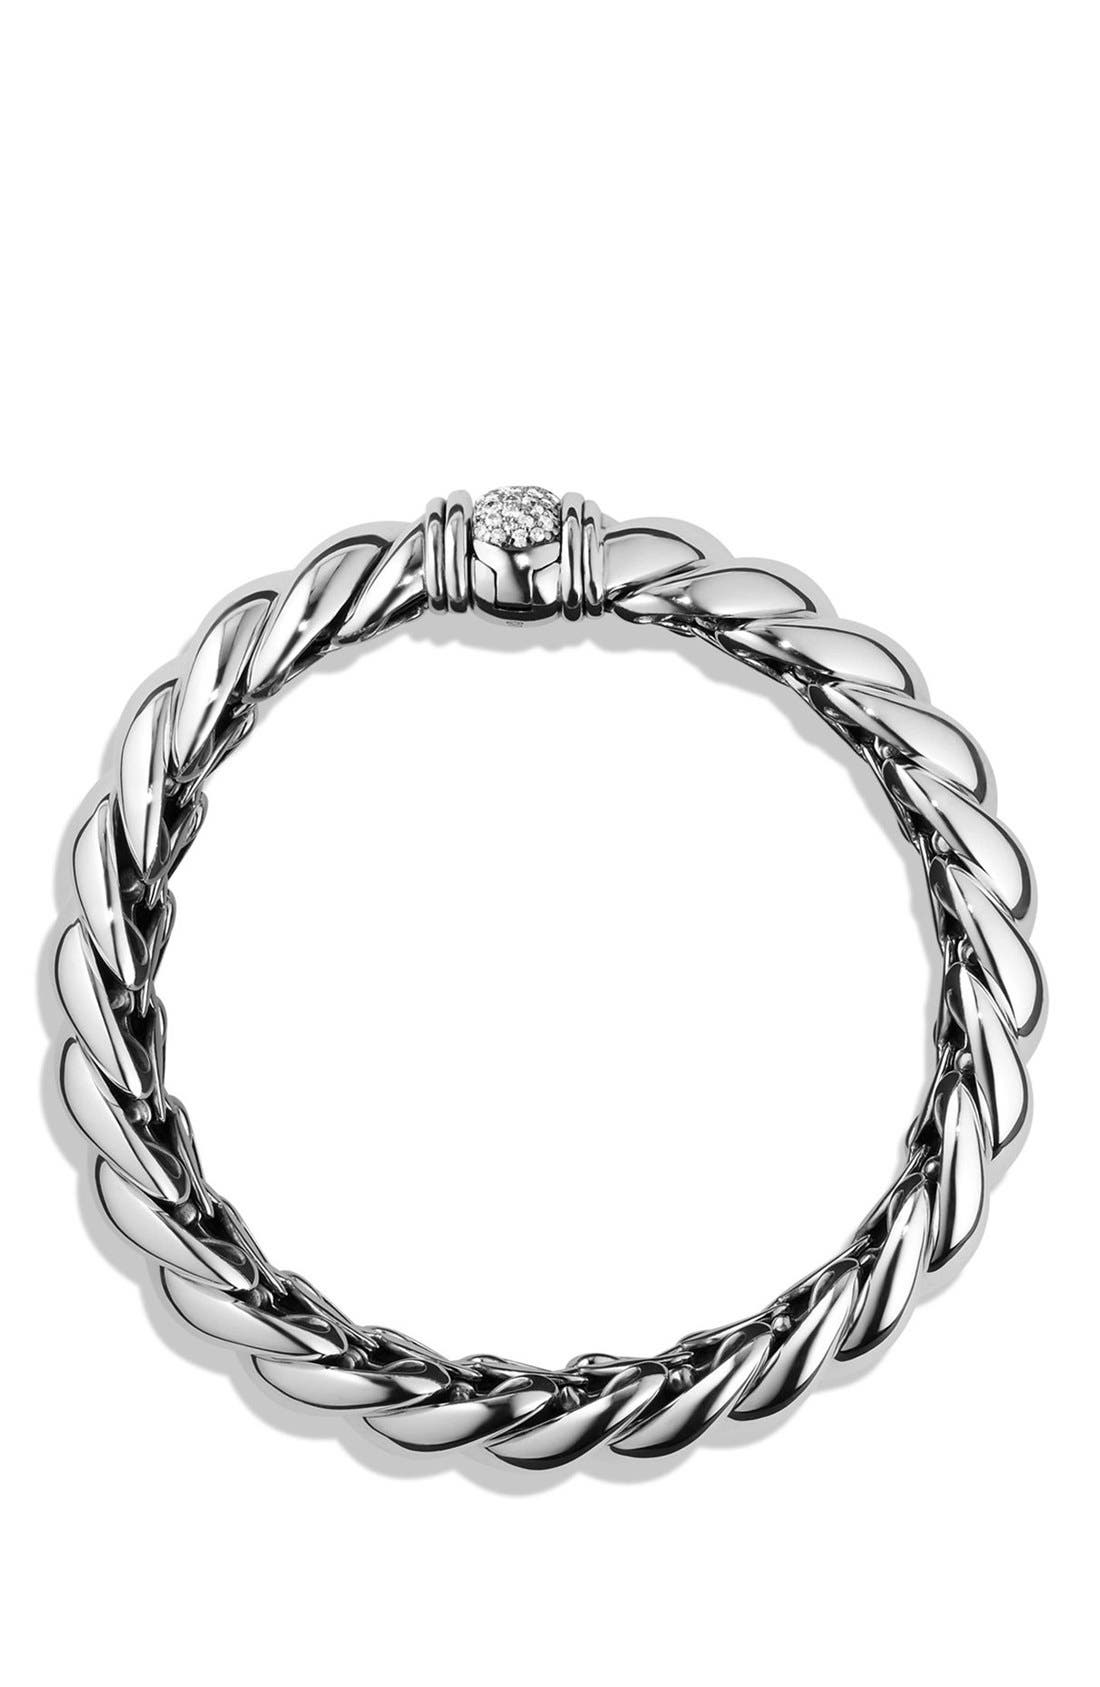 'Hampton' Bracelet with Diamonds,                         Main,                         color, 041